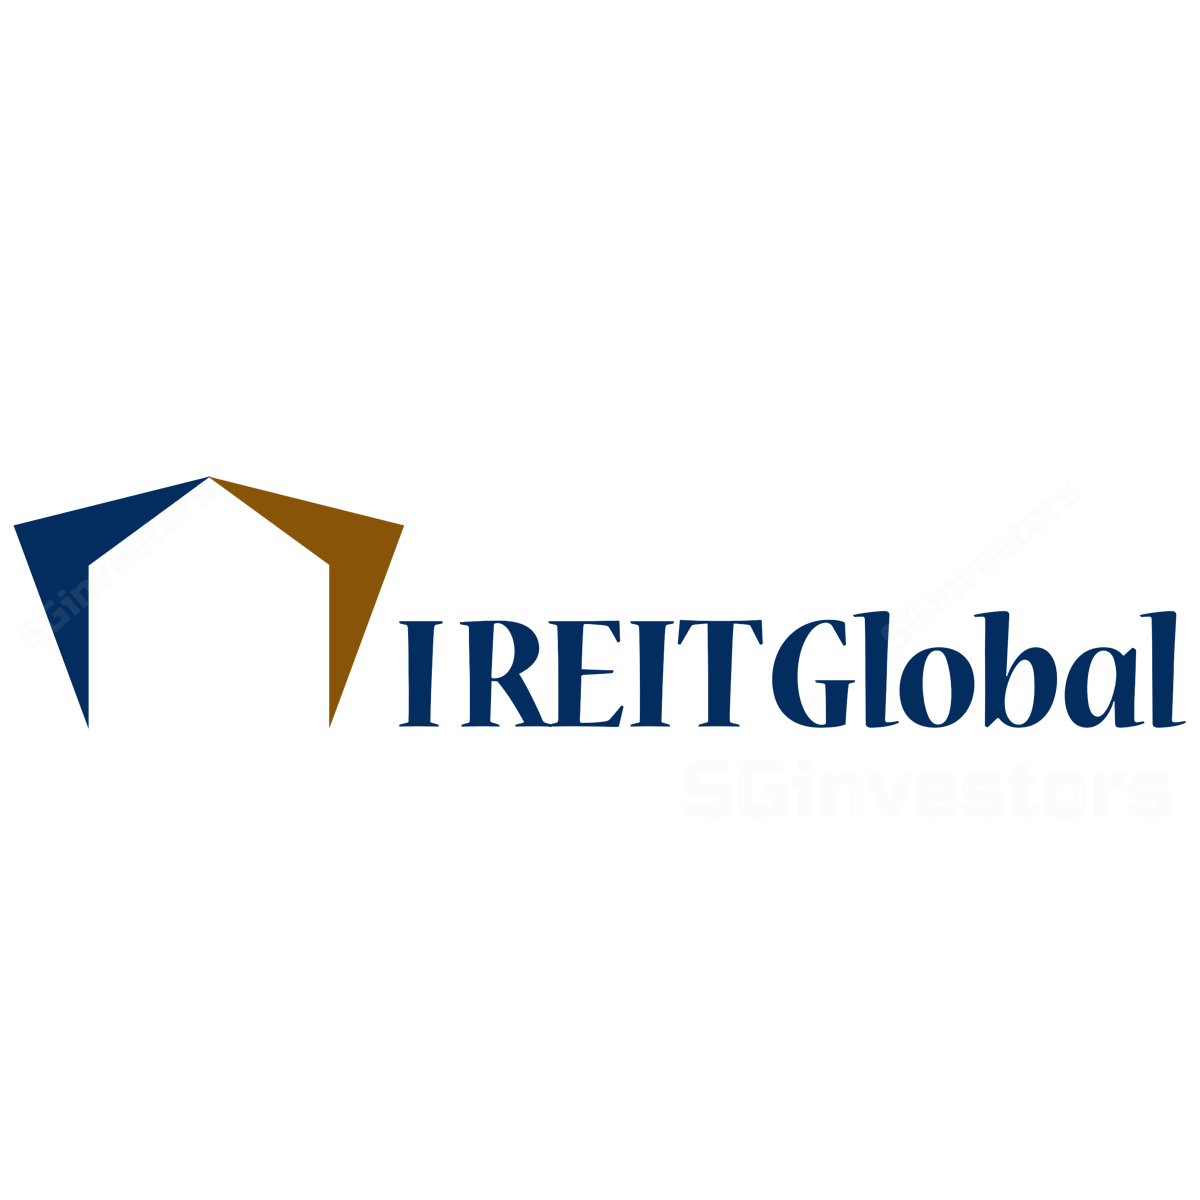 IREIT Global - DBS Vickers 2016-11-25: Waiting for new sponsor's direction